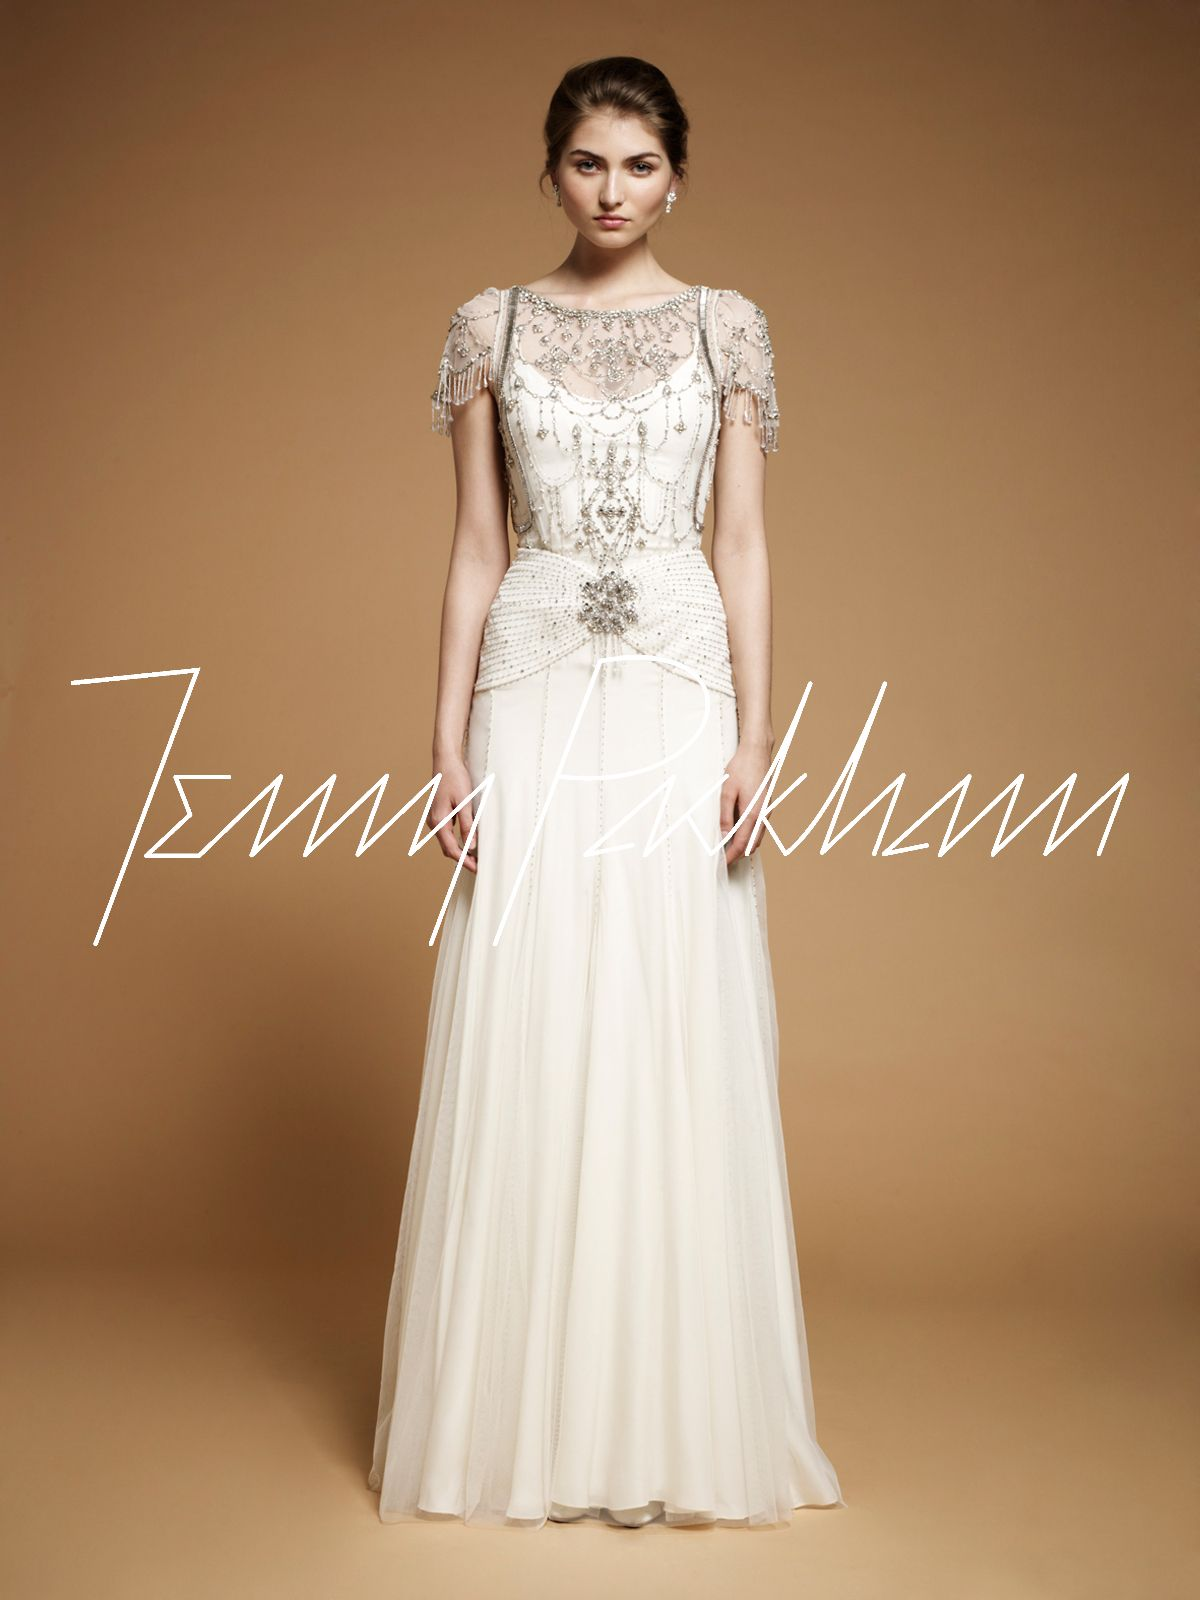 Vintage style wedding gown damasks jenny packham and wedding dress